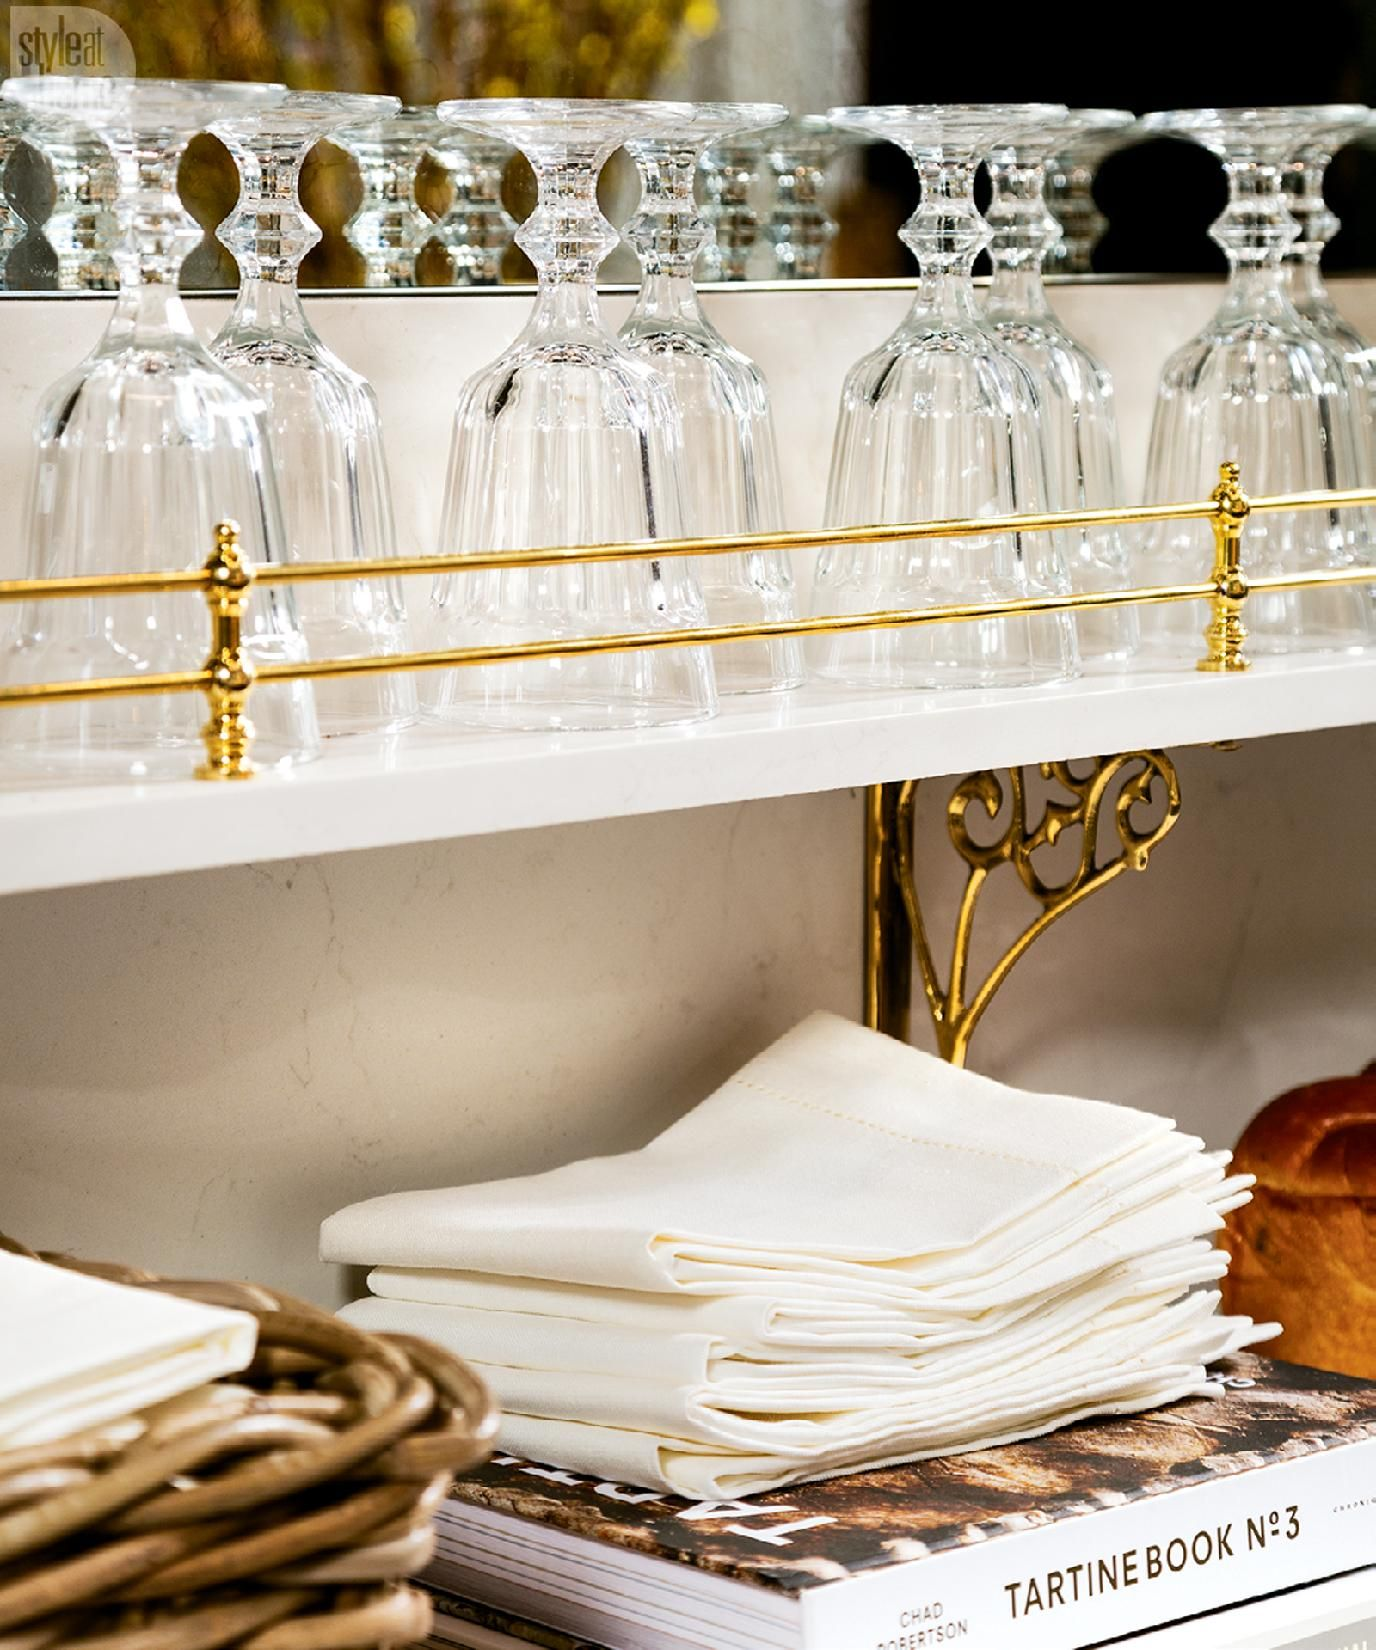 brass-railed shelf for glasses and brass rods for hanging everyday pots, pans and dishcloths, lend an air of a fashionable French bistro.